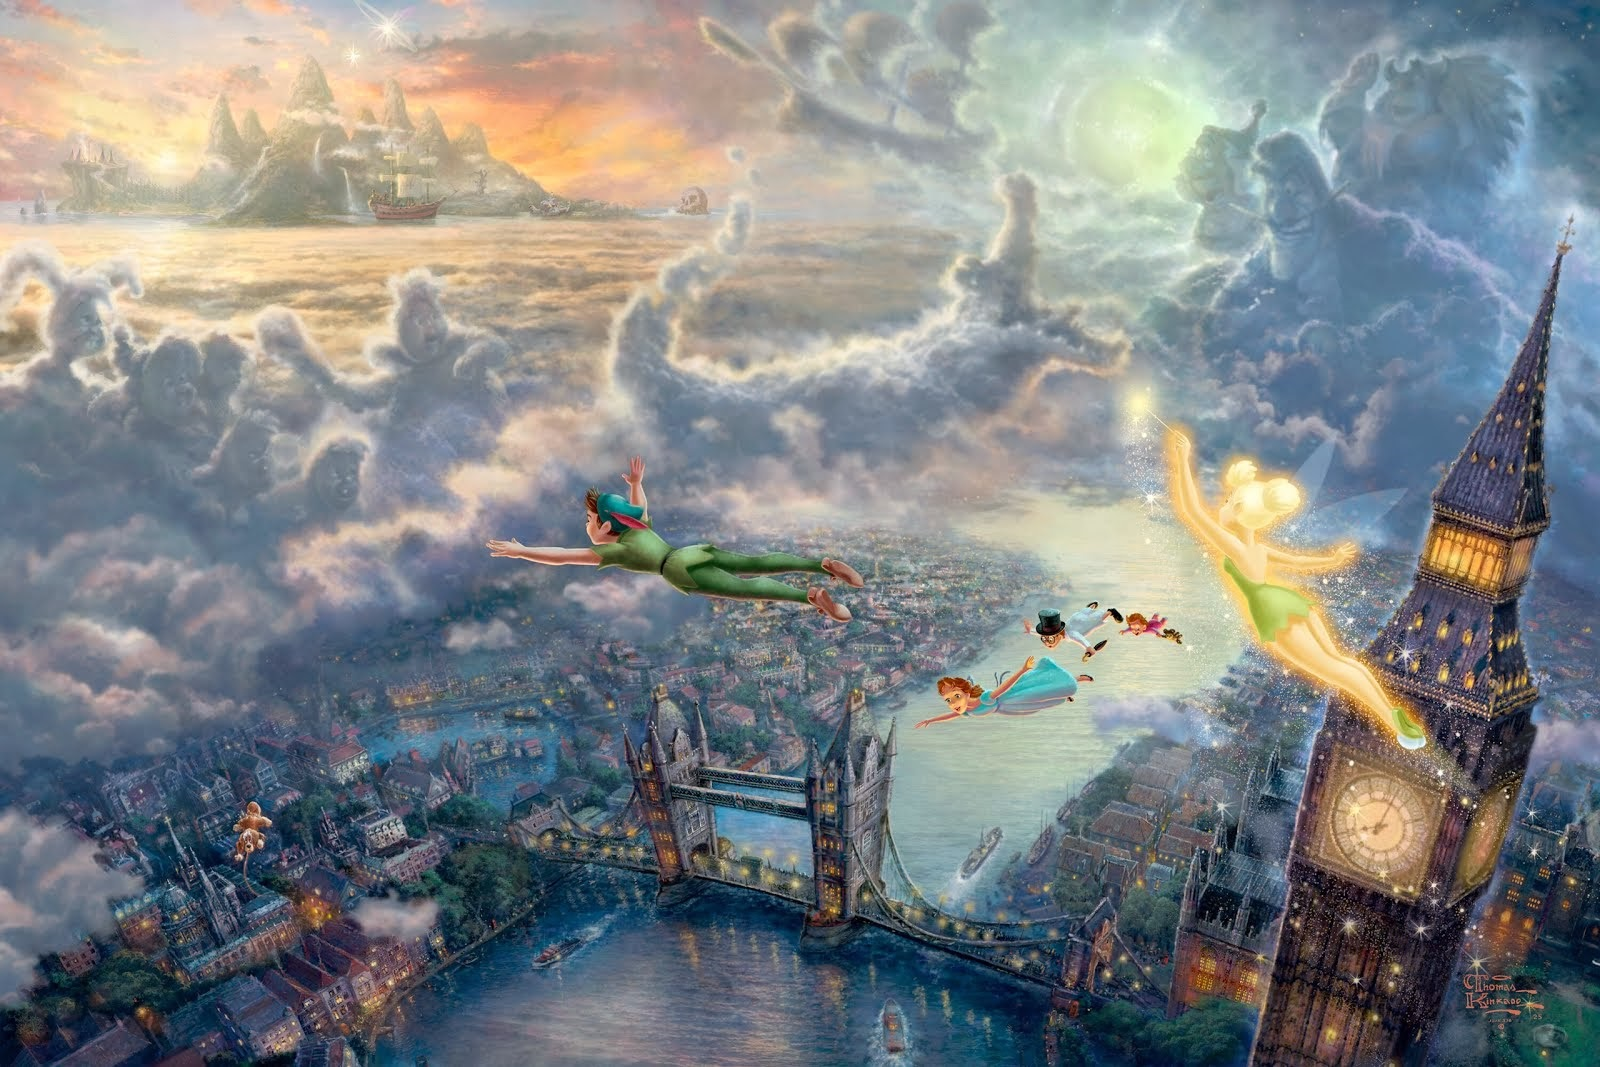 'Peter Pan' - Thomas Kinkade